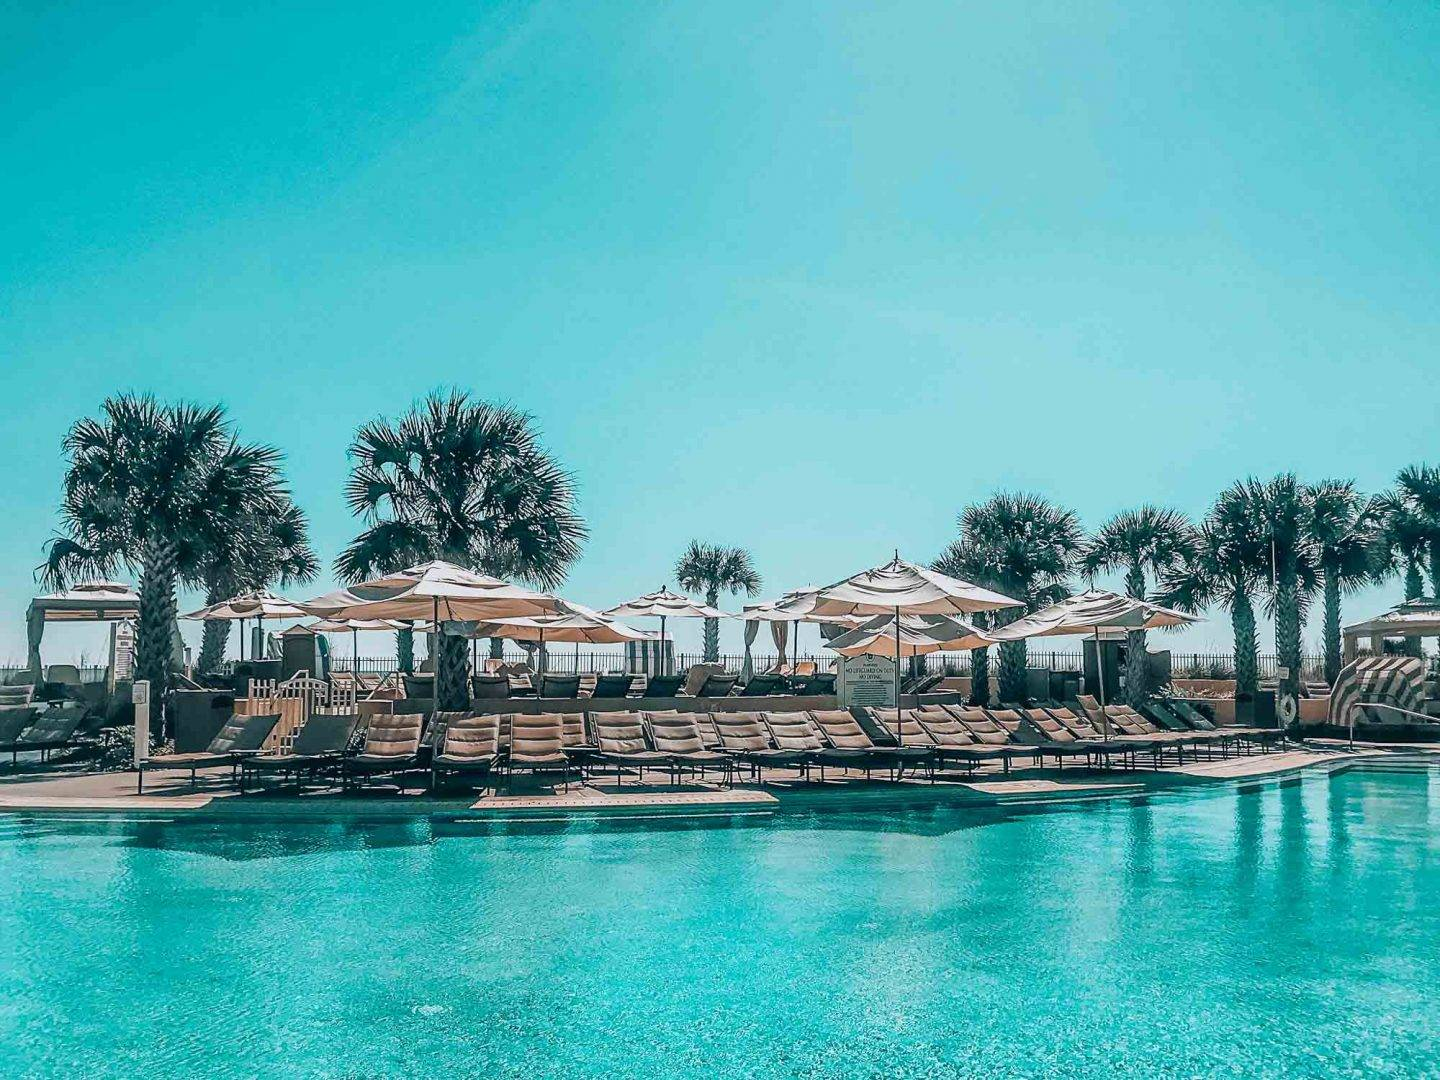 The ultimate guide to Amelia Island in Florida. This guide shows you things to do, where to stay and what to eat.